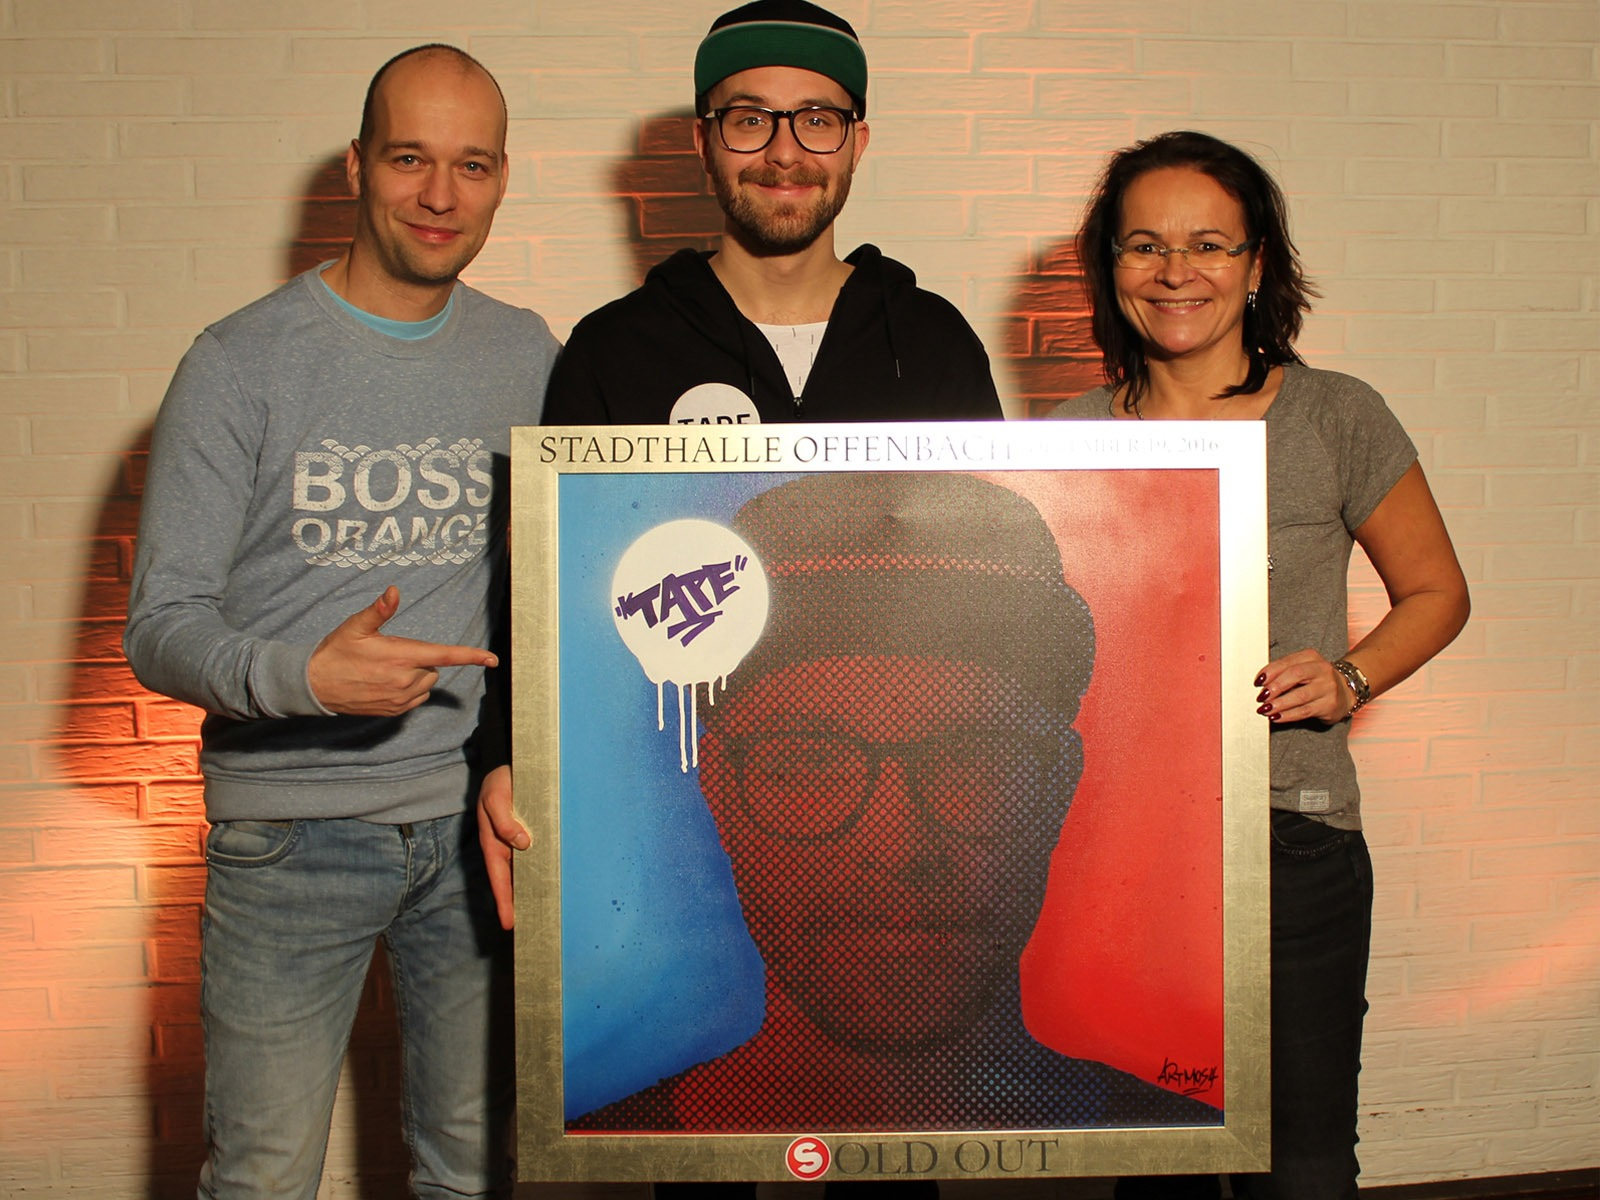 graffitiauftrag_artmos4_sold_out_award_mark_forster_Stadthalle_Offenbach_Leinwand_Graffiti